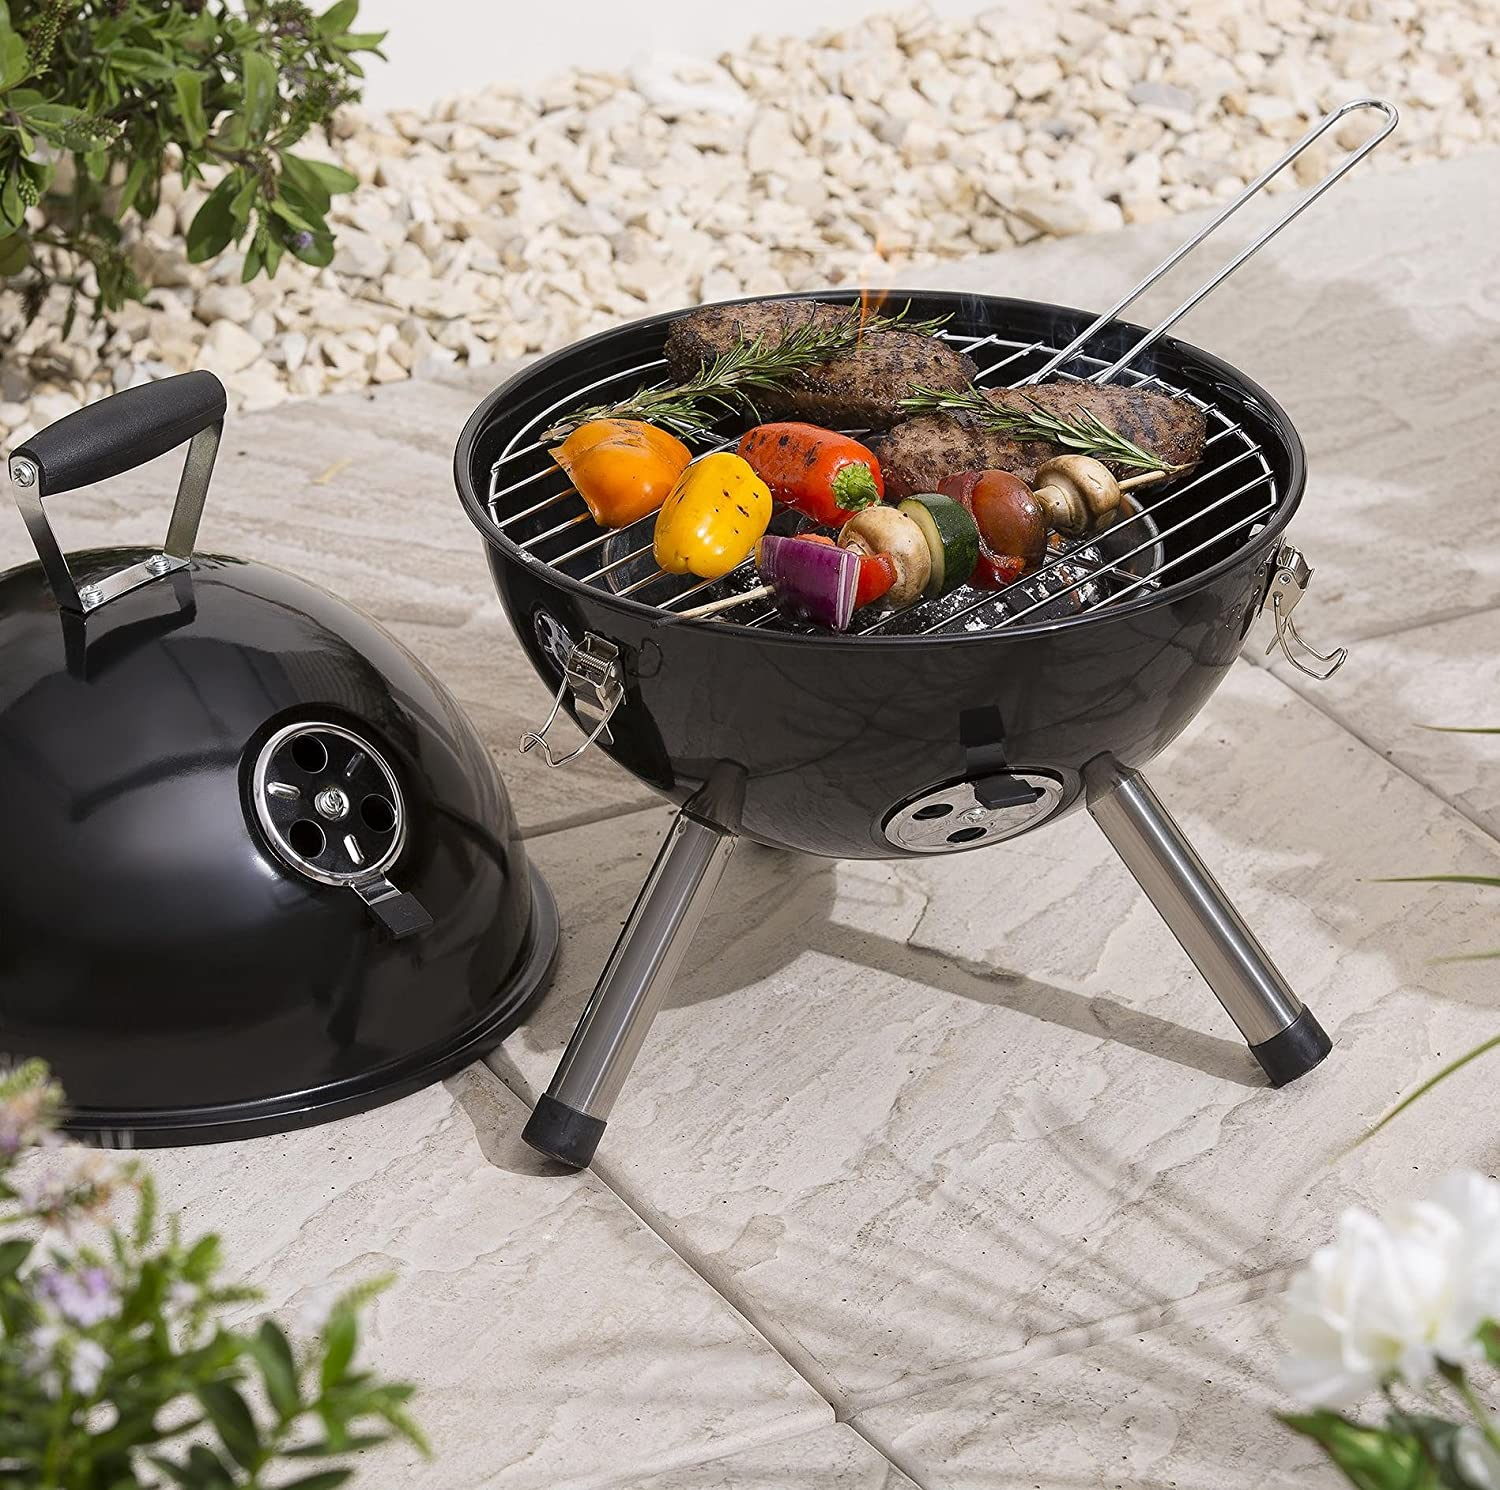 Garden & Patio Tesco Portable Charcoal Kettle BBQ Barbecues